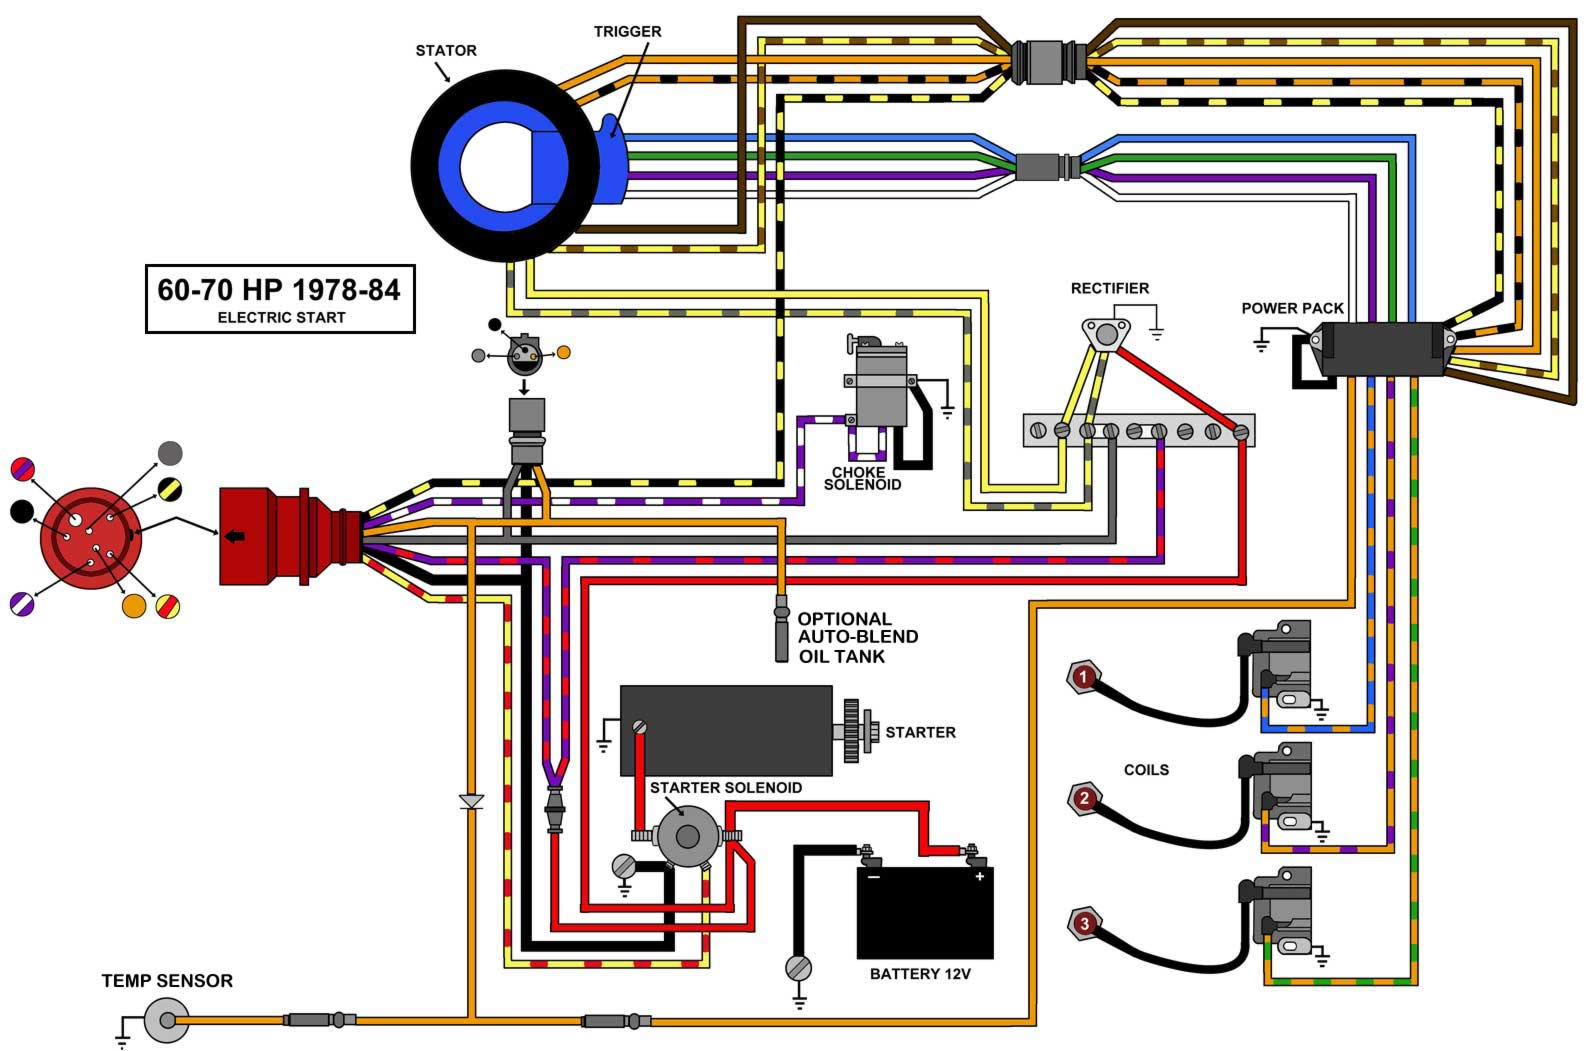 78 84_3 CYL_EL omc control box wiring diagram omc control box parts \u2022 wiring 1992 johnson 40 hp outboard wiring diagram at soozxer.org